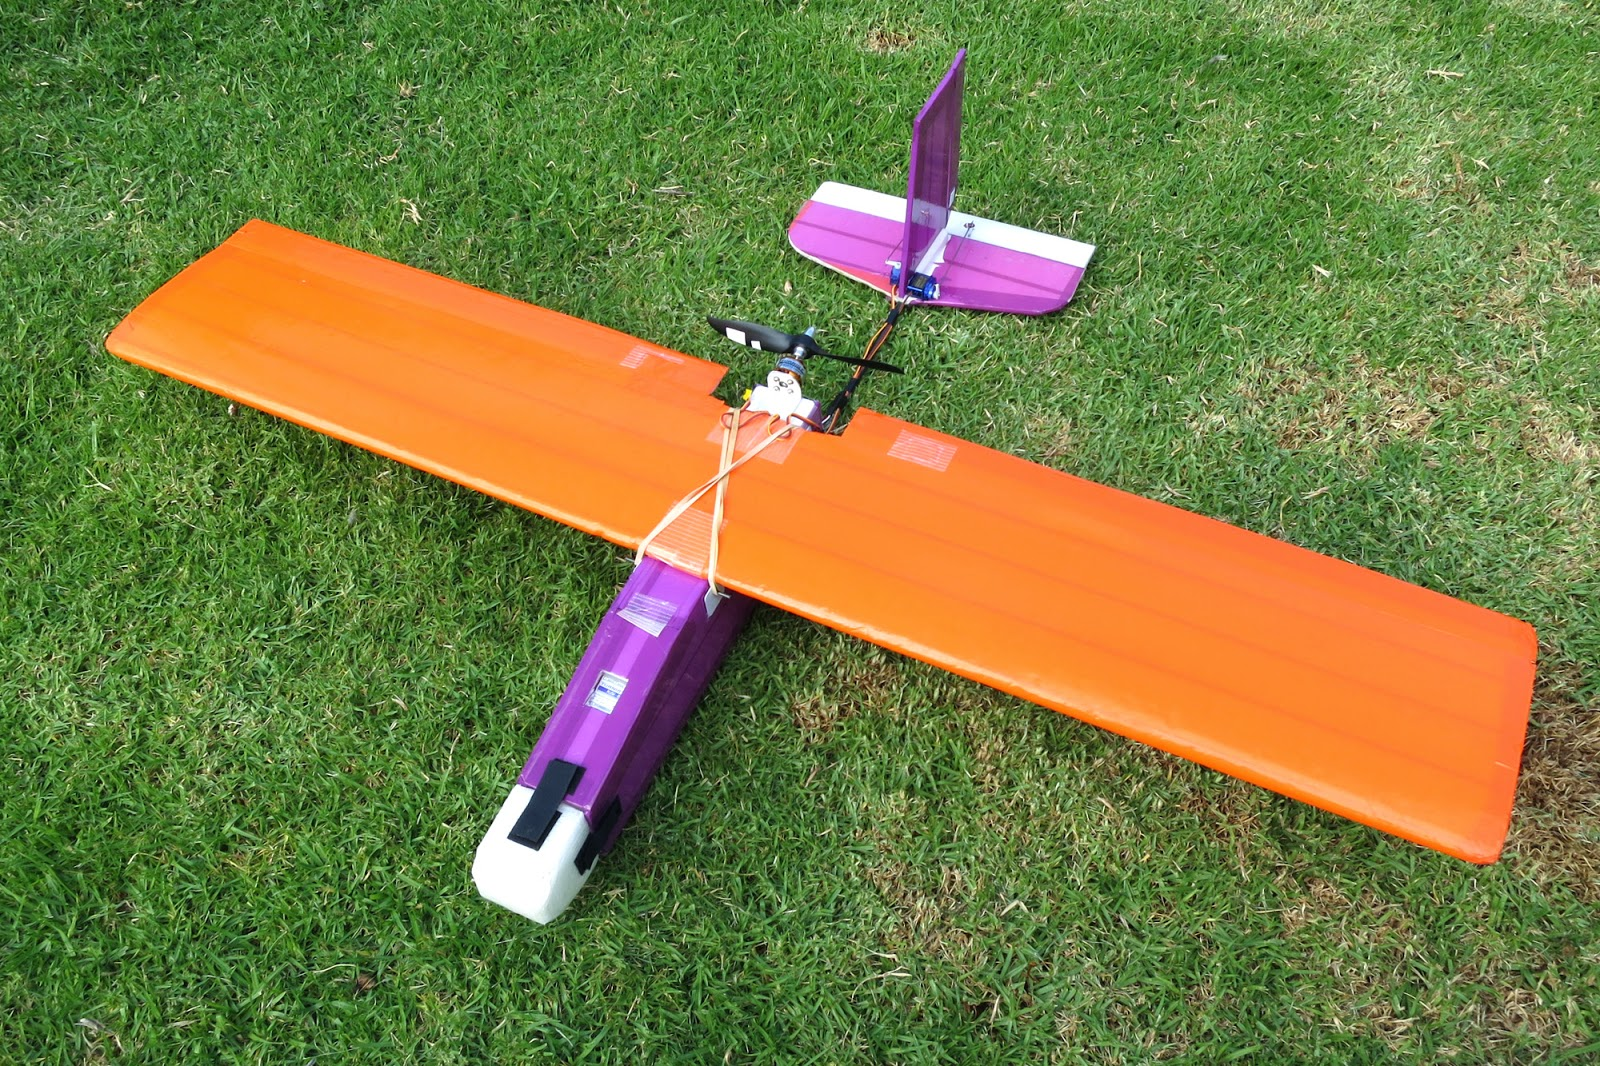 aerobatic rc planes with 2014 04 01 Archive on Erc Micro Spitfire Rtf 24ghz Mode 2 Radio Control Plane additionally Super Zoom Iii 1000mm as well Cessna 152 60 91 Arf Sea174 moreover Index moreover P 81.